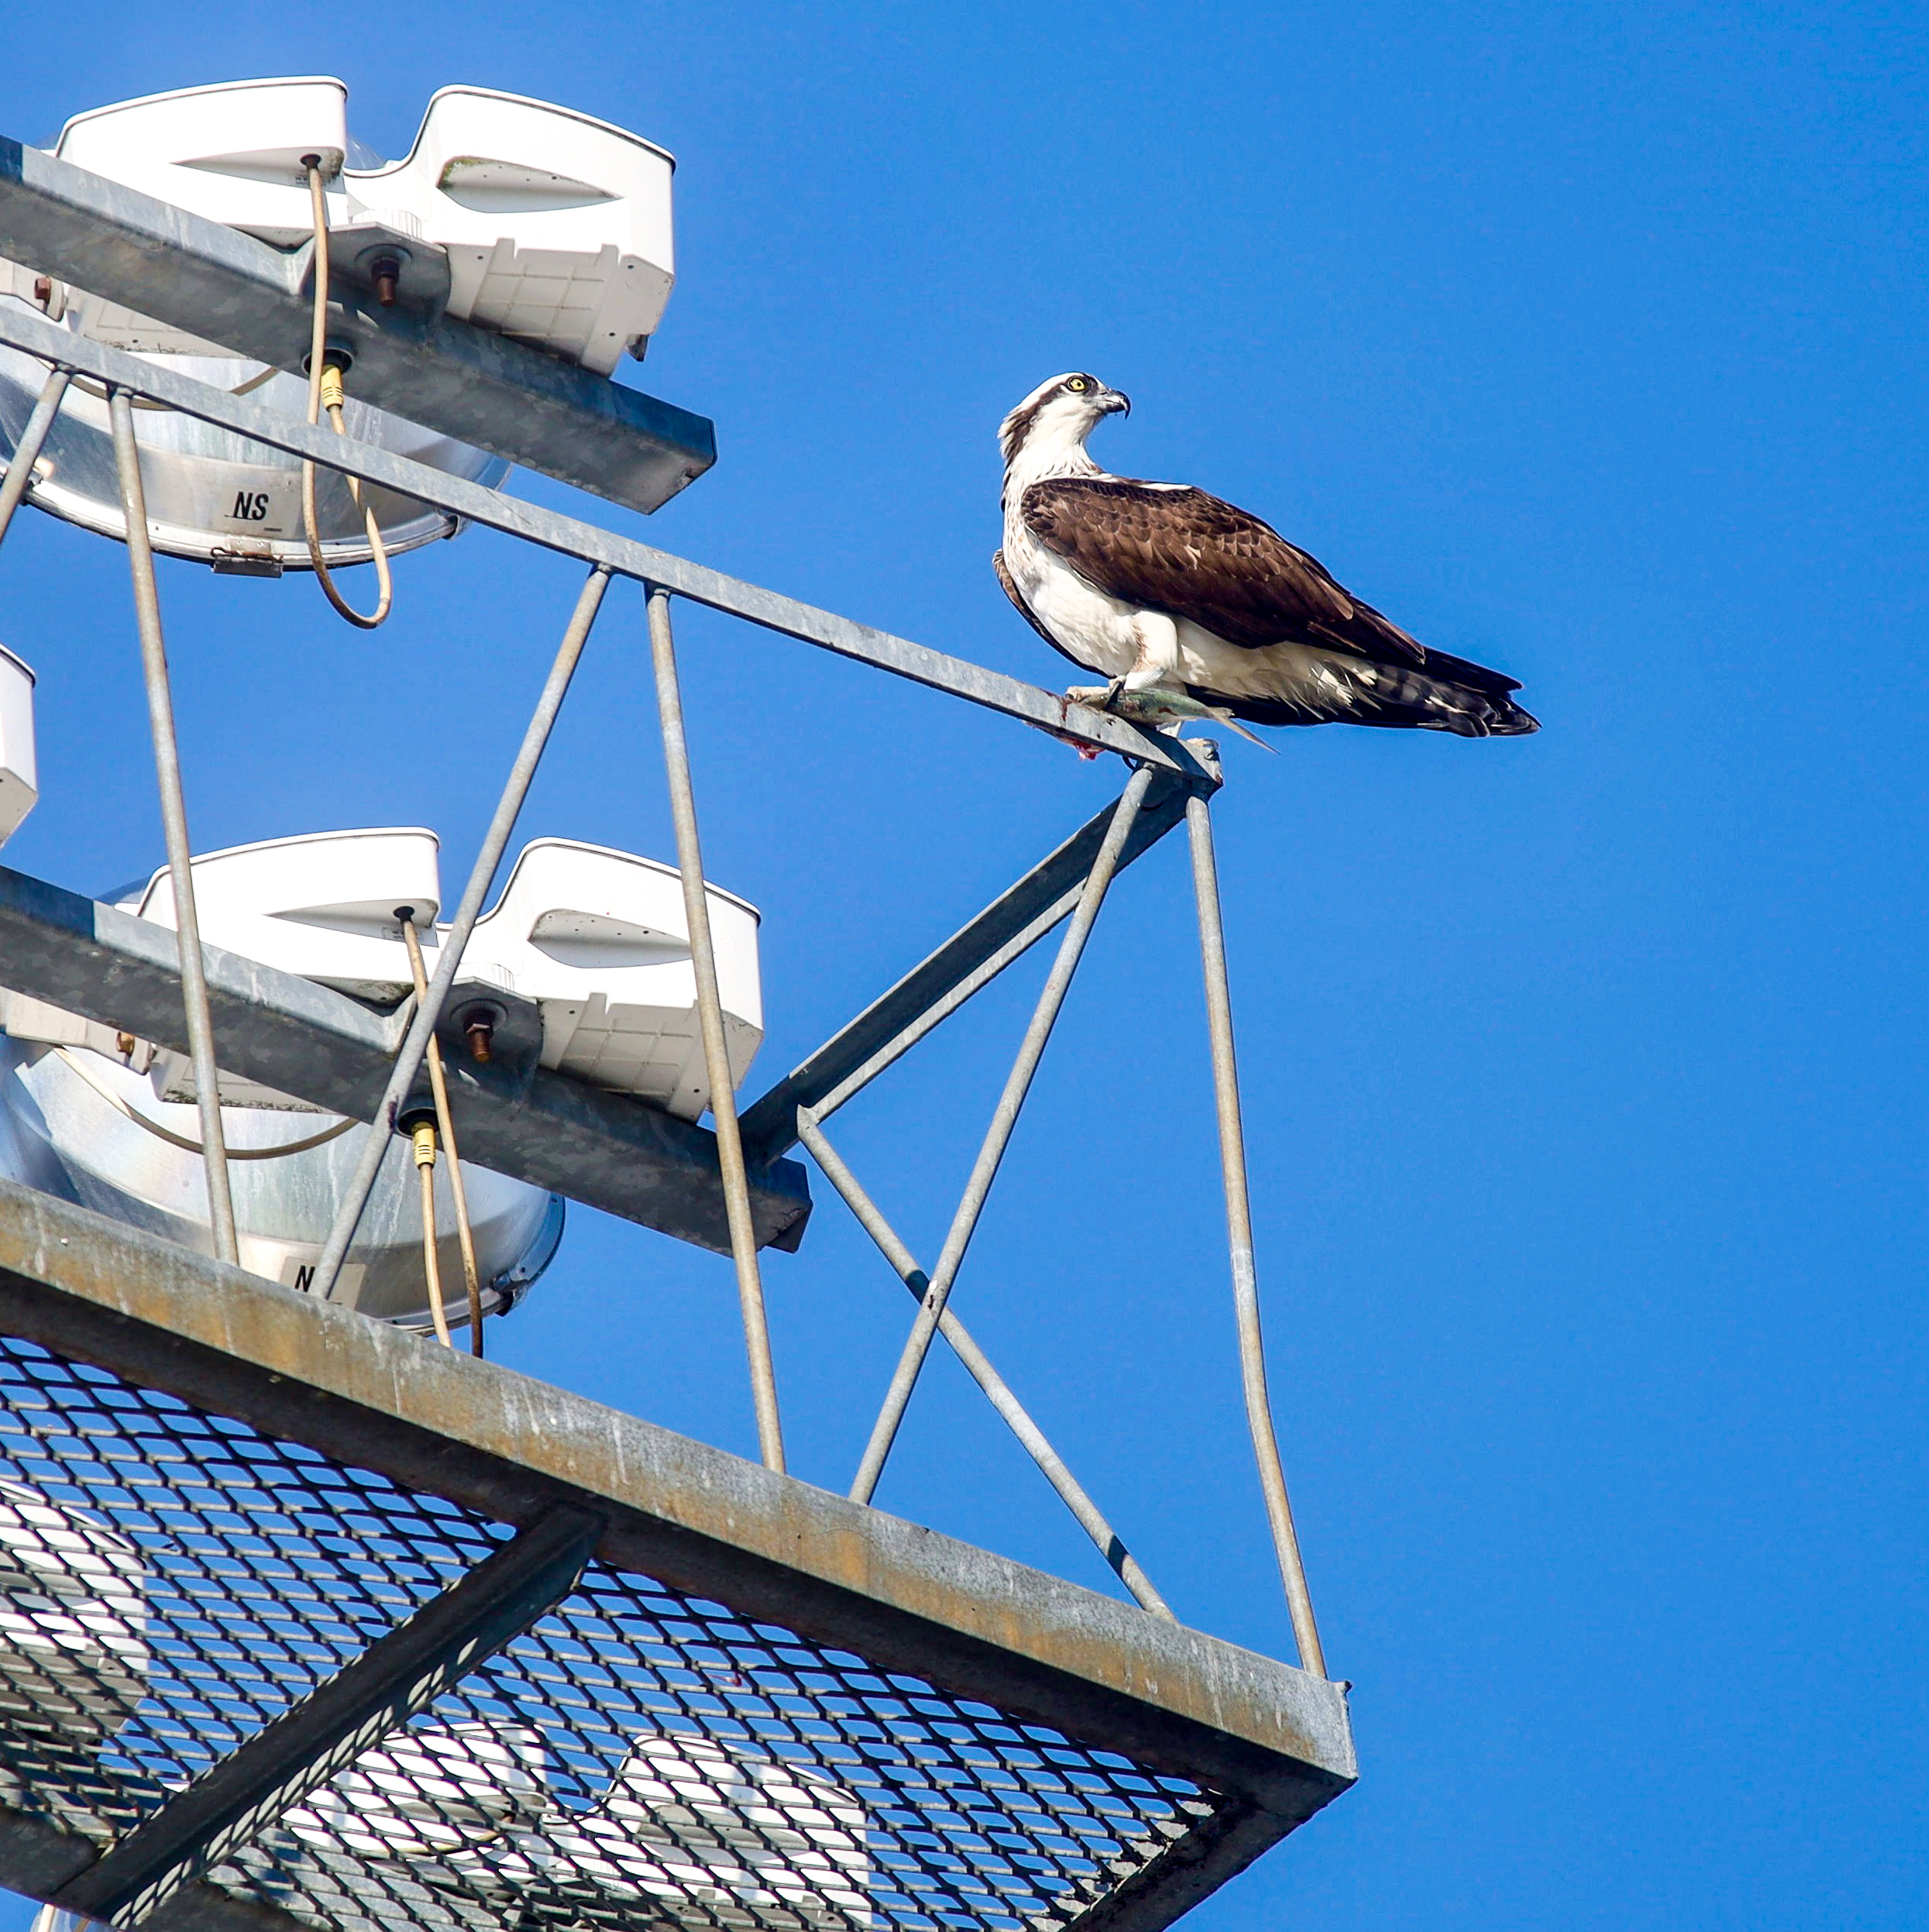 The bird that sparked McKerrow's project, an Osprey eating a midday snack. Courtesy of Joshua McKerrow